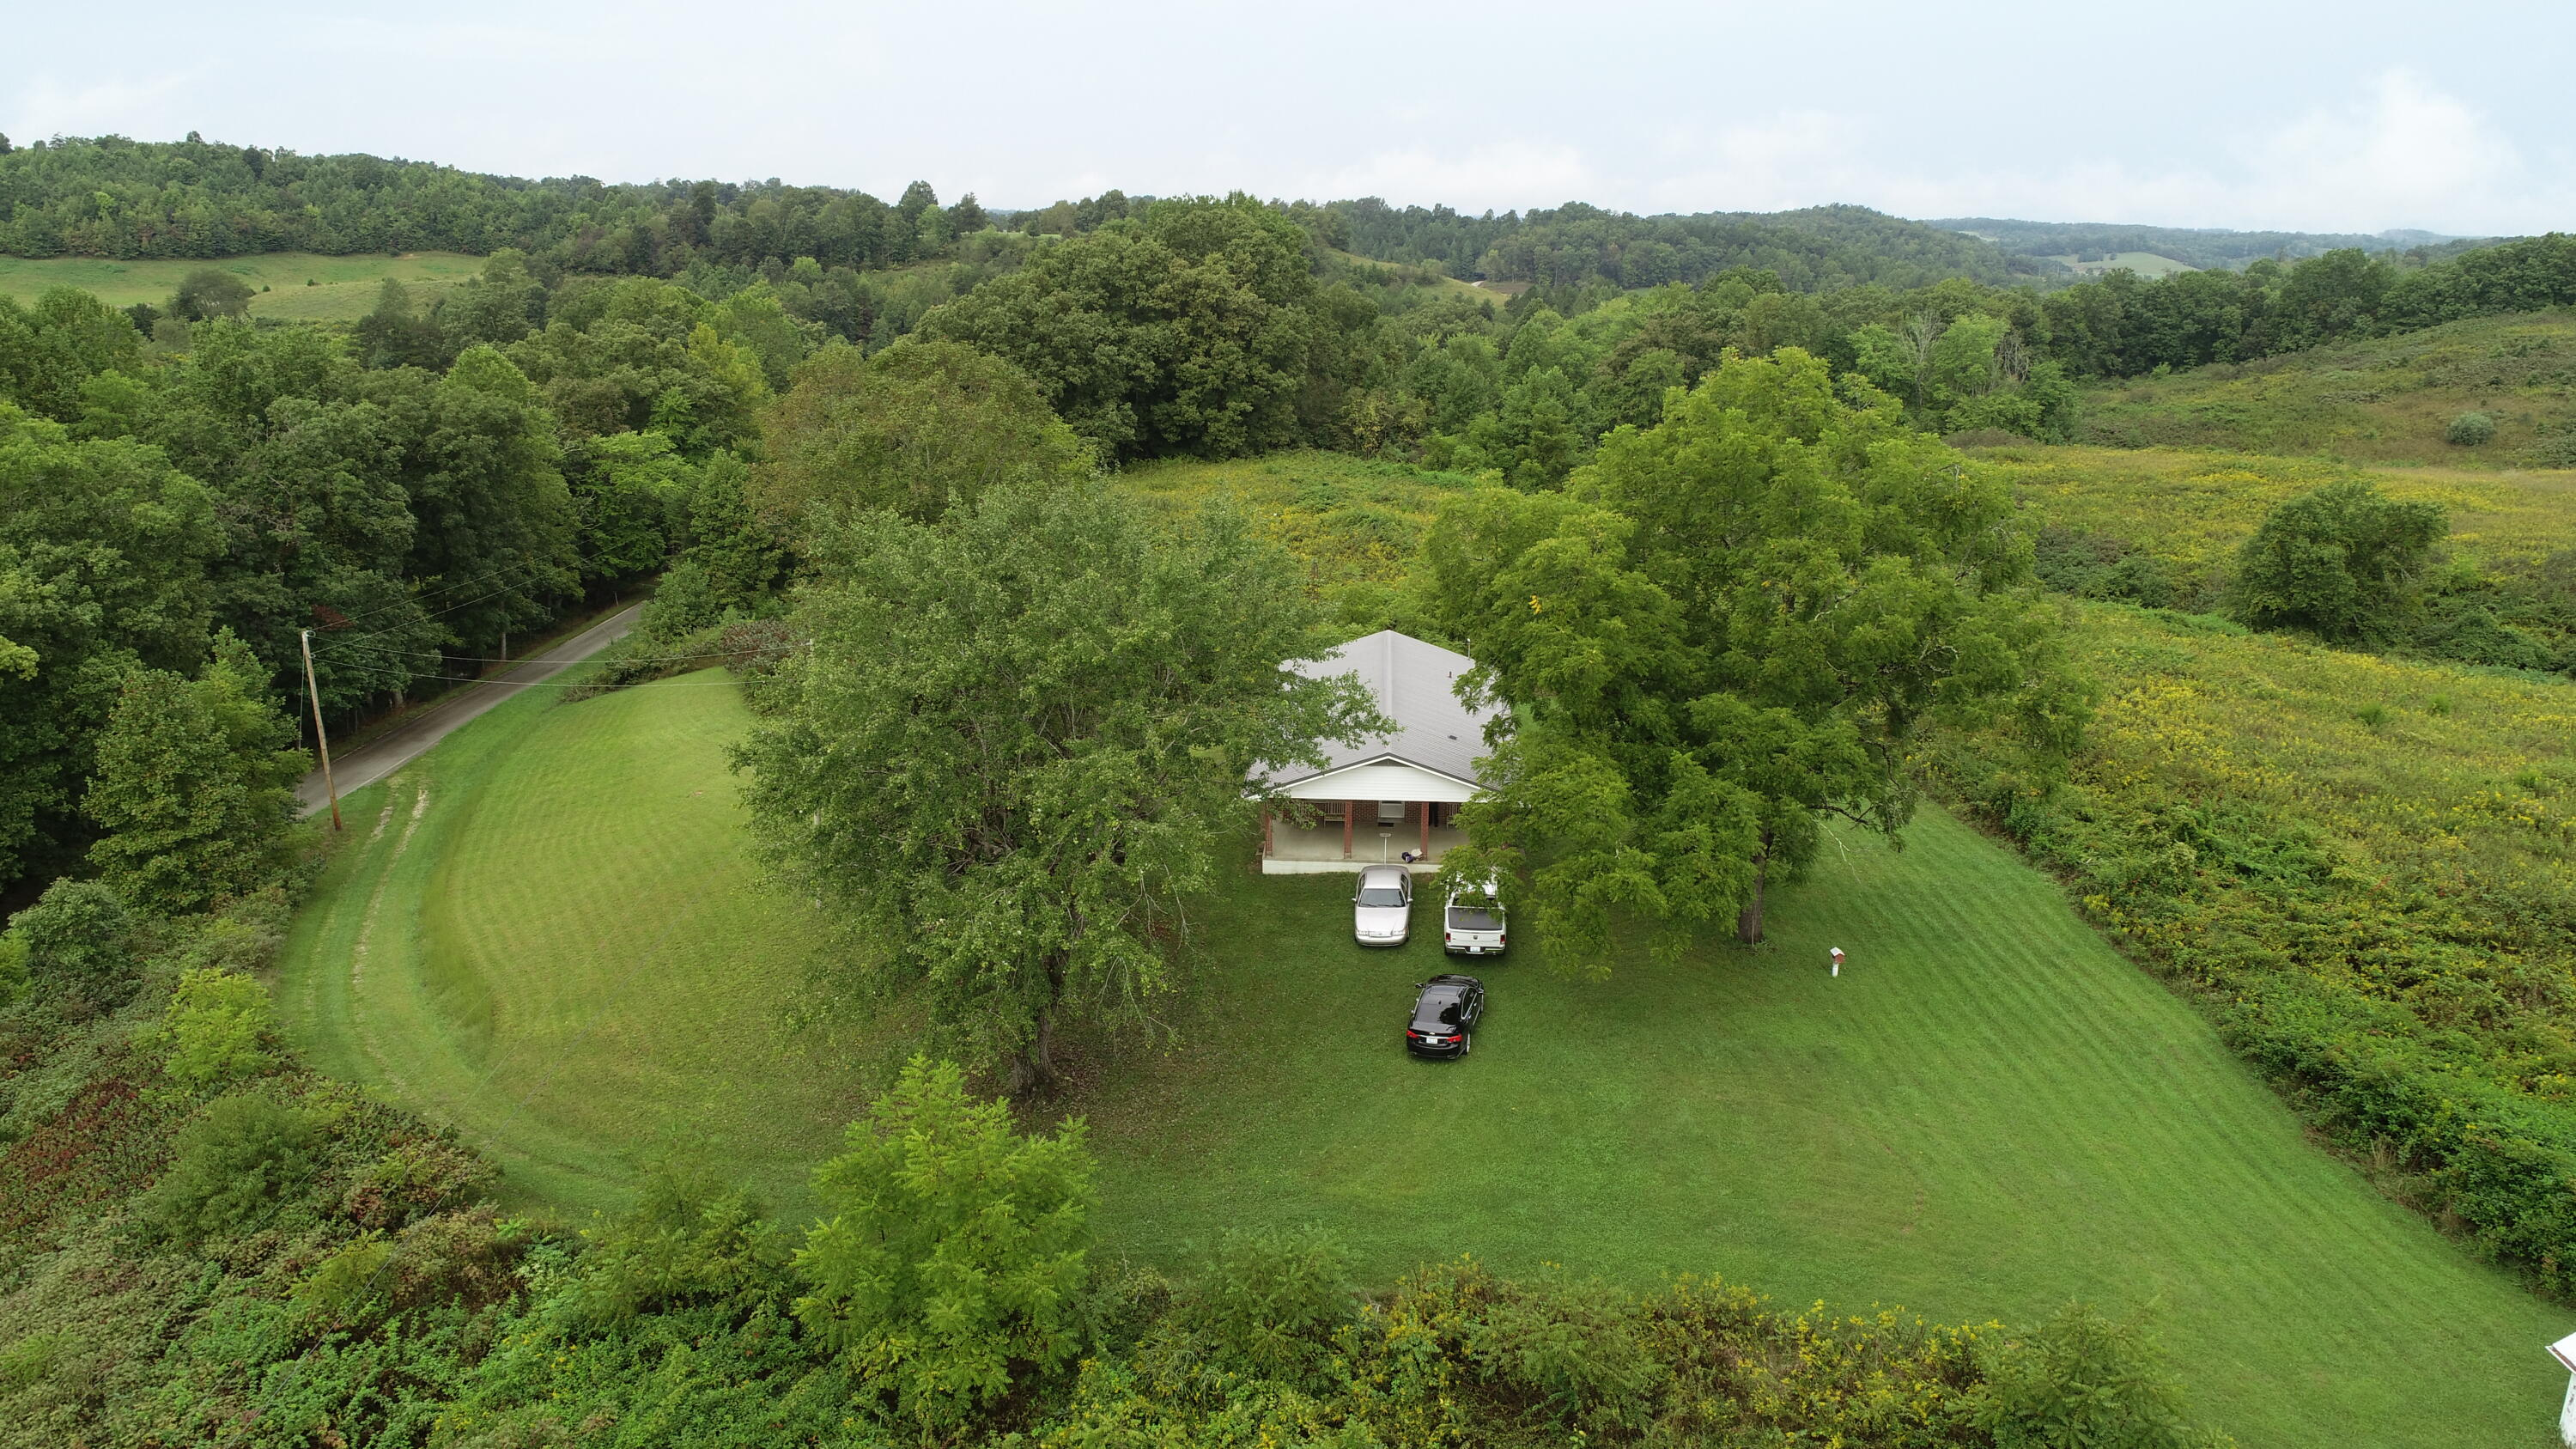 177 Hwy 1071, Green Hall, KY 40486